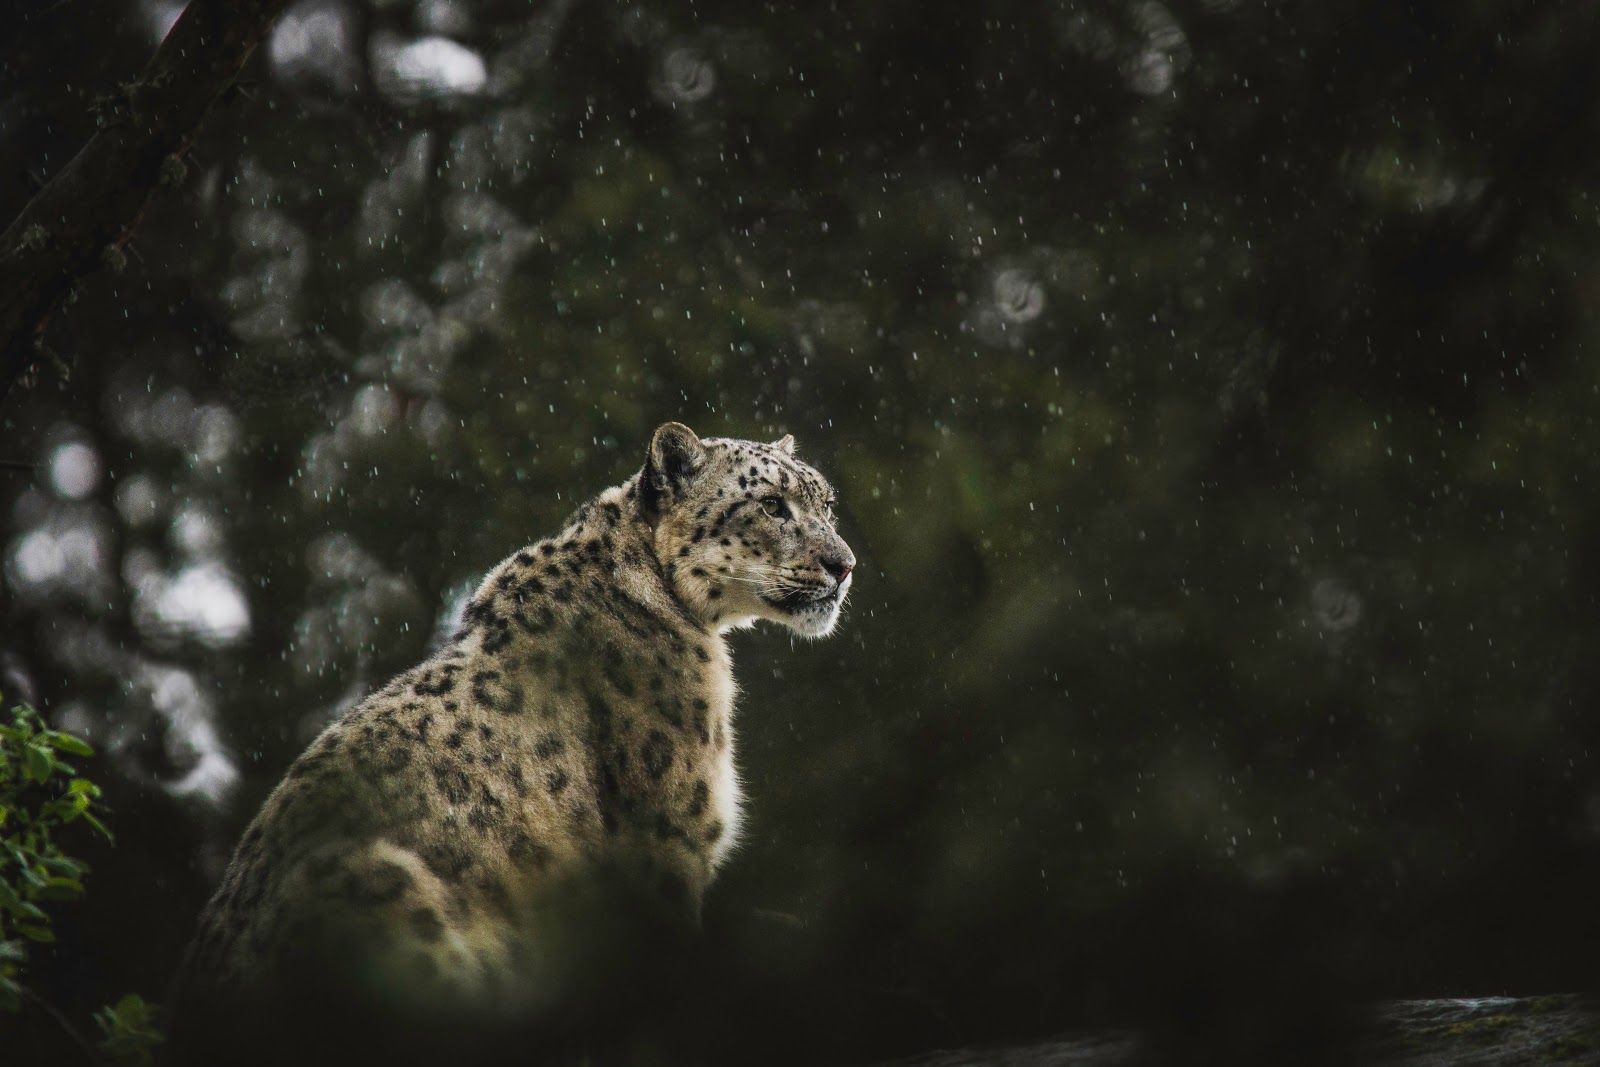 Leopard walking in the snow, partially obscured by blurred foliage in the foreground